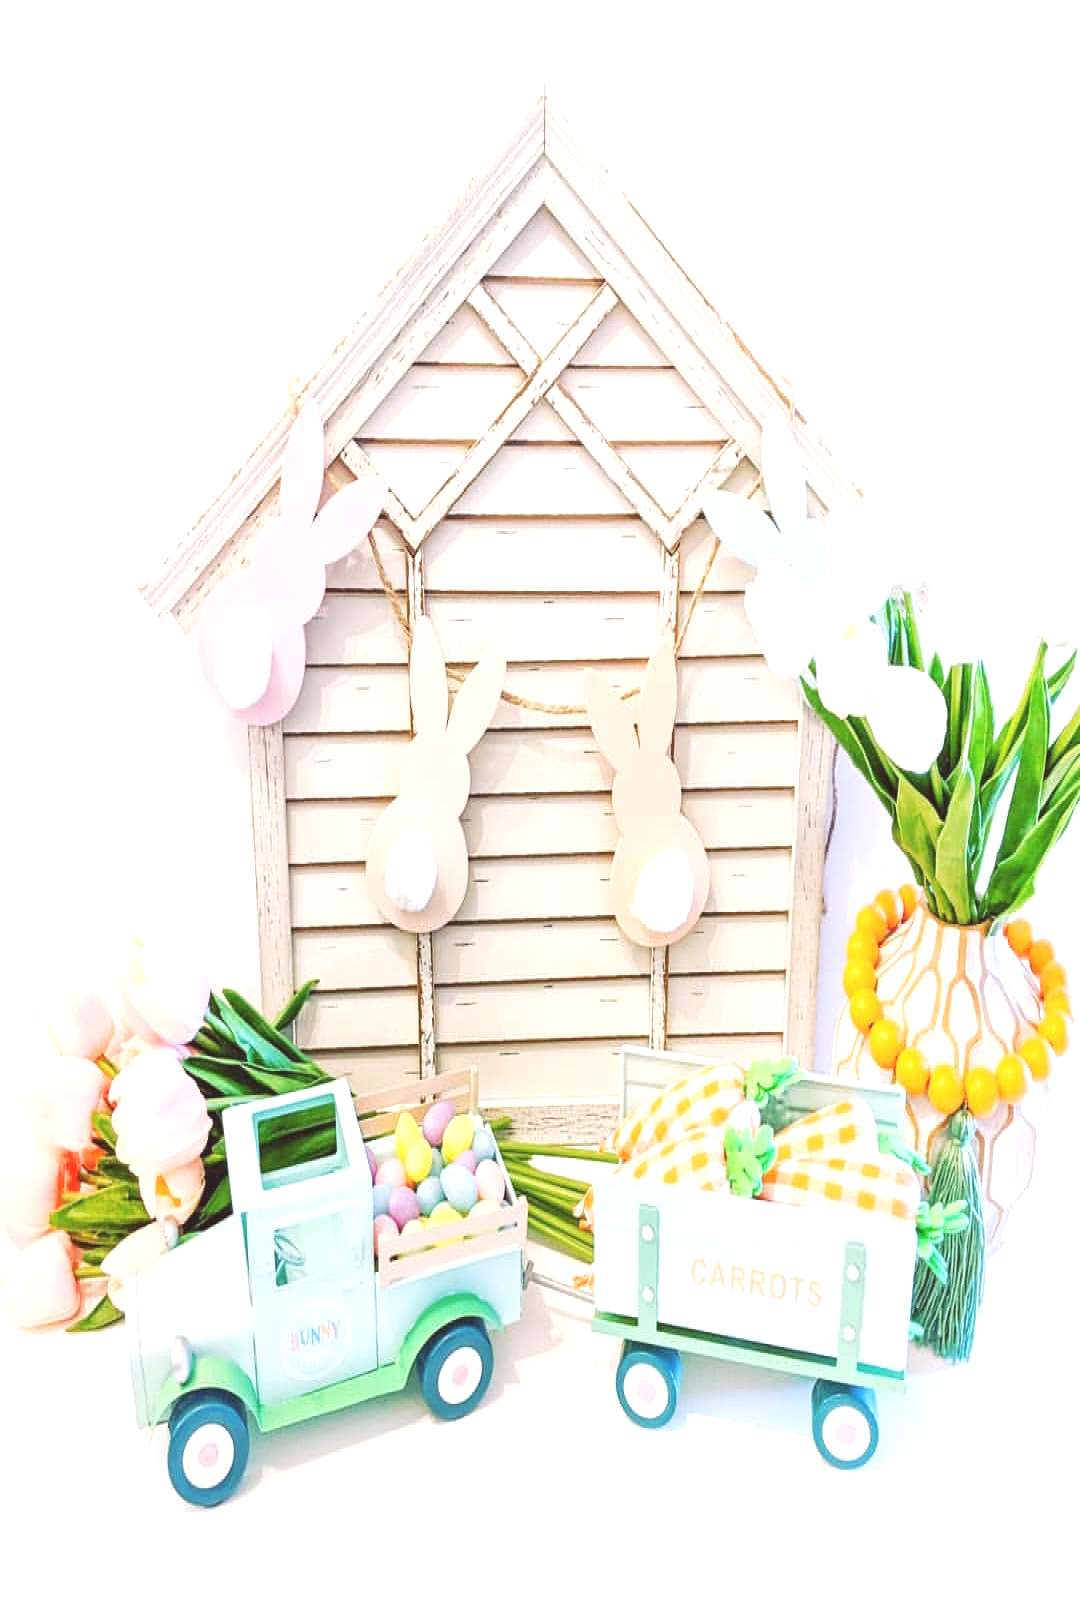 Easter/Spring Haul/Vignette In the spirit of mixing it up, here